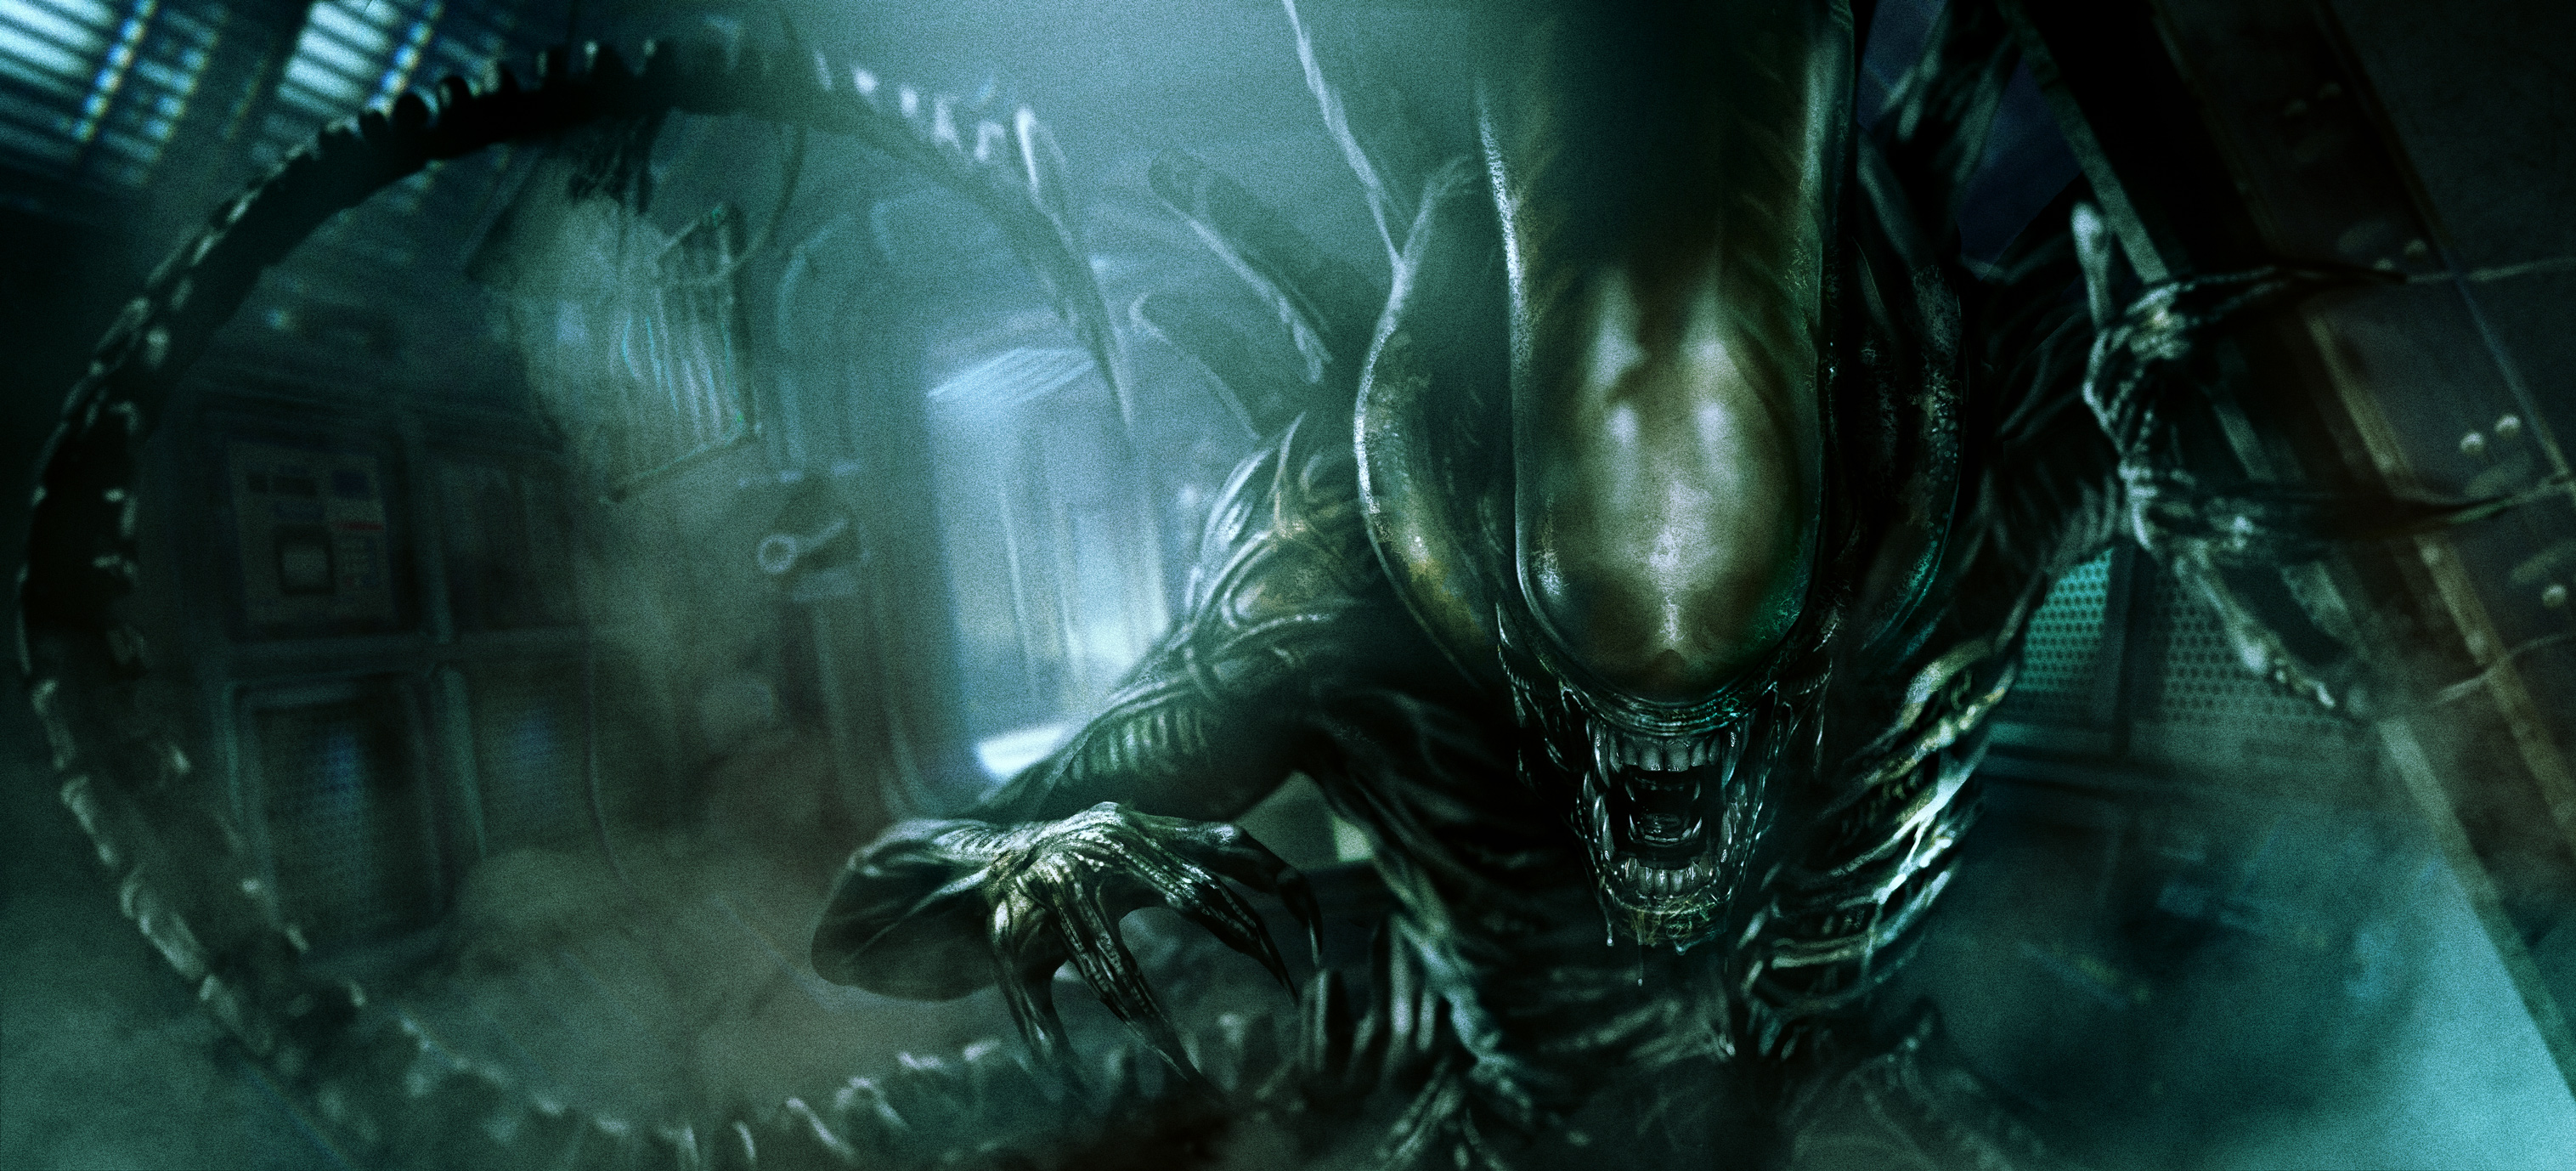 Cute Wallpapers For Whatsapp Profile Pic Alien Hd Wallpaper Background Image 3032x1378 Id